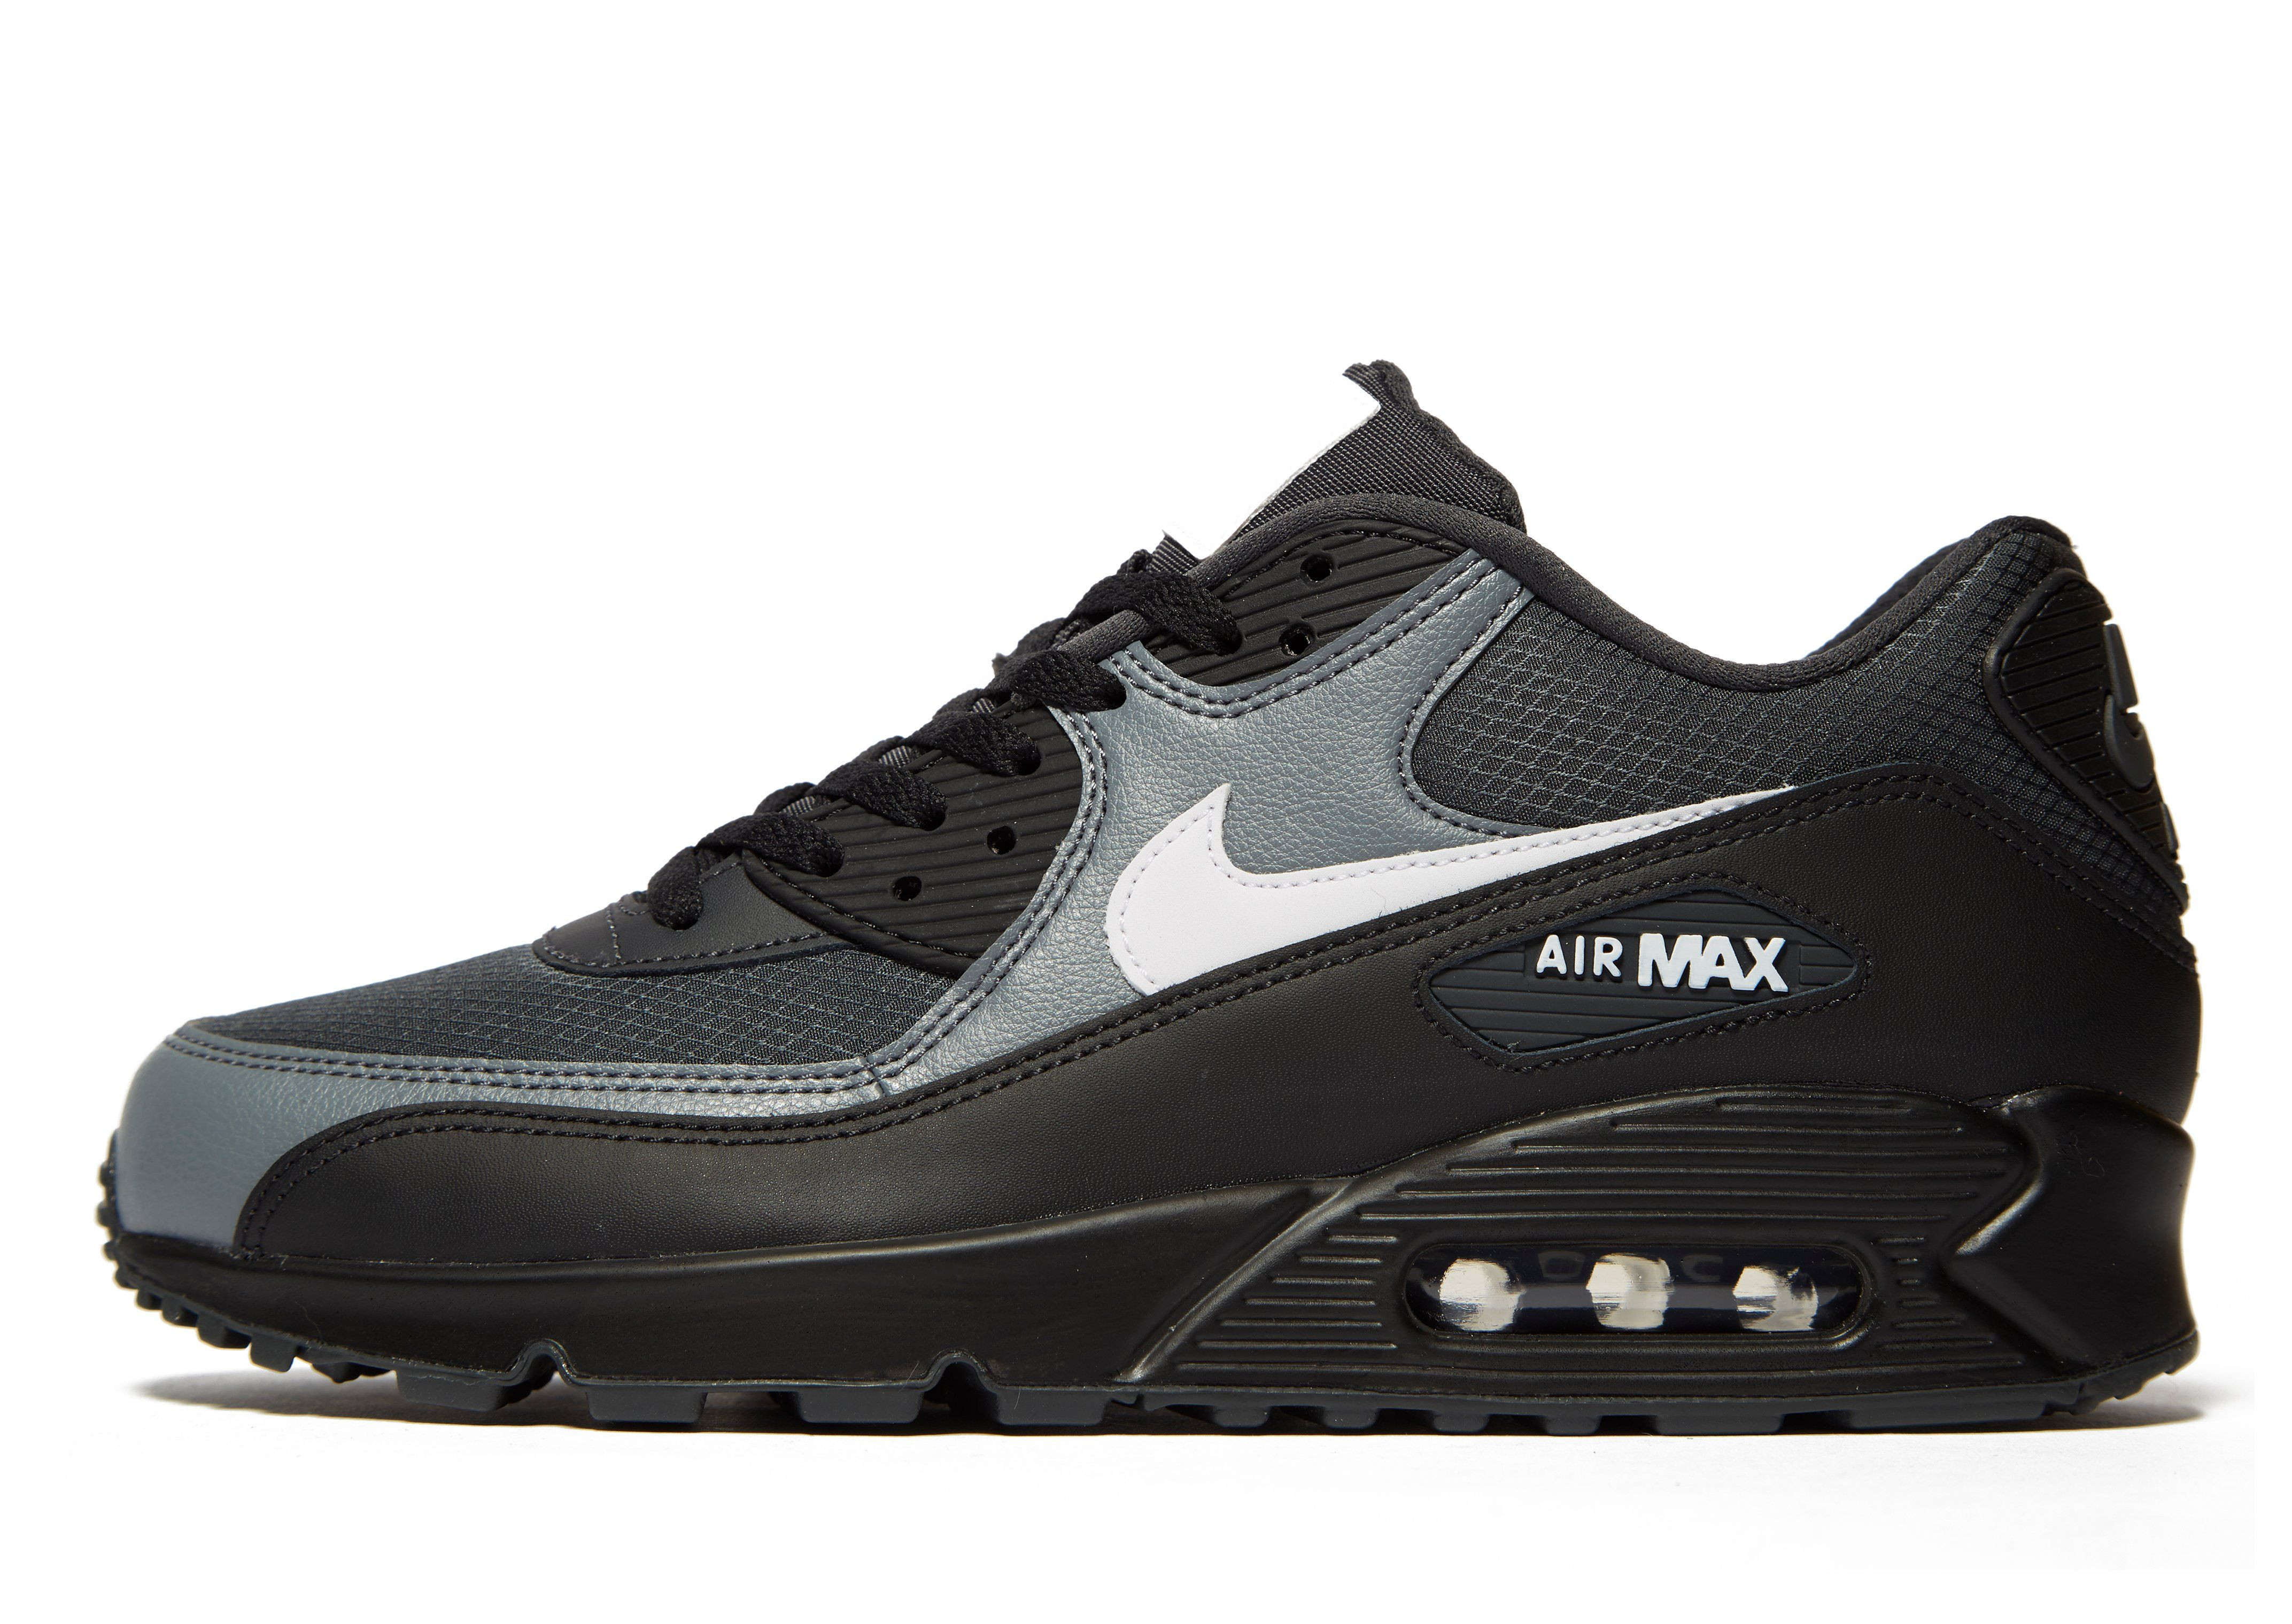 Air Max 90 Essential Nuevo Pink White Mens Nike Air Max 90 Essential Shoes Of 36  Adorable Air Max 90 Essential